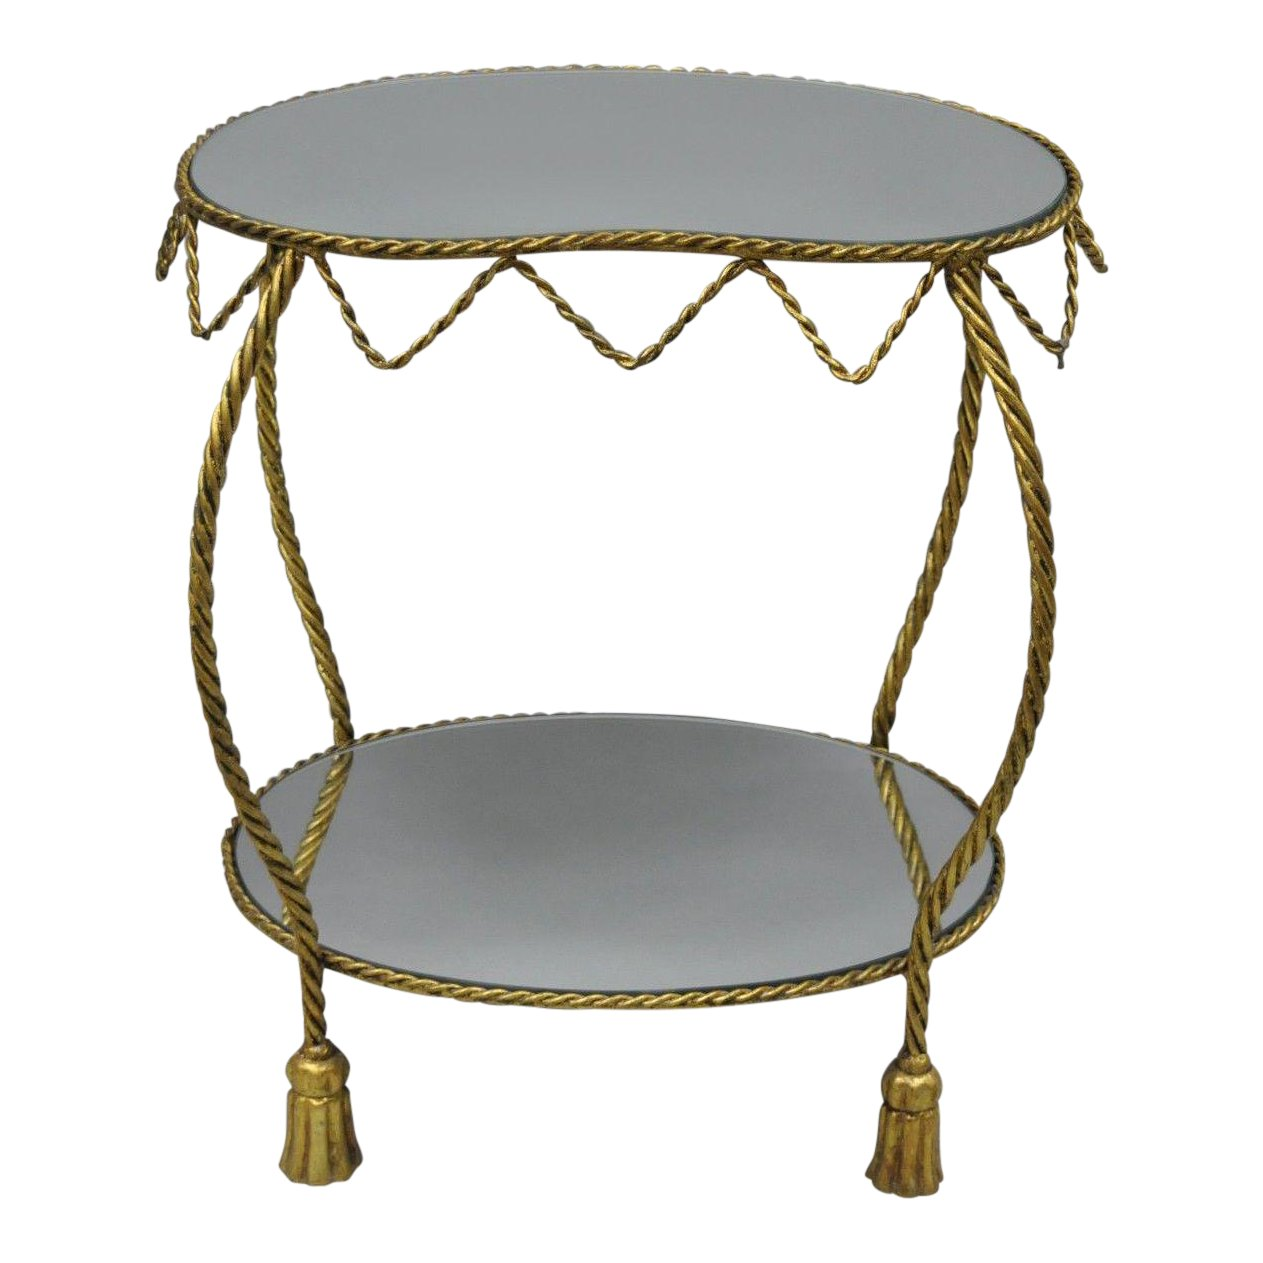 hollywood regency italian gold tassel rope kidney shape mirror top and side table shaped accent chairish tall end tables target outside lawn chairs ikea high west elm floor white